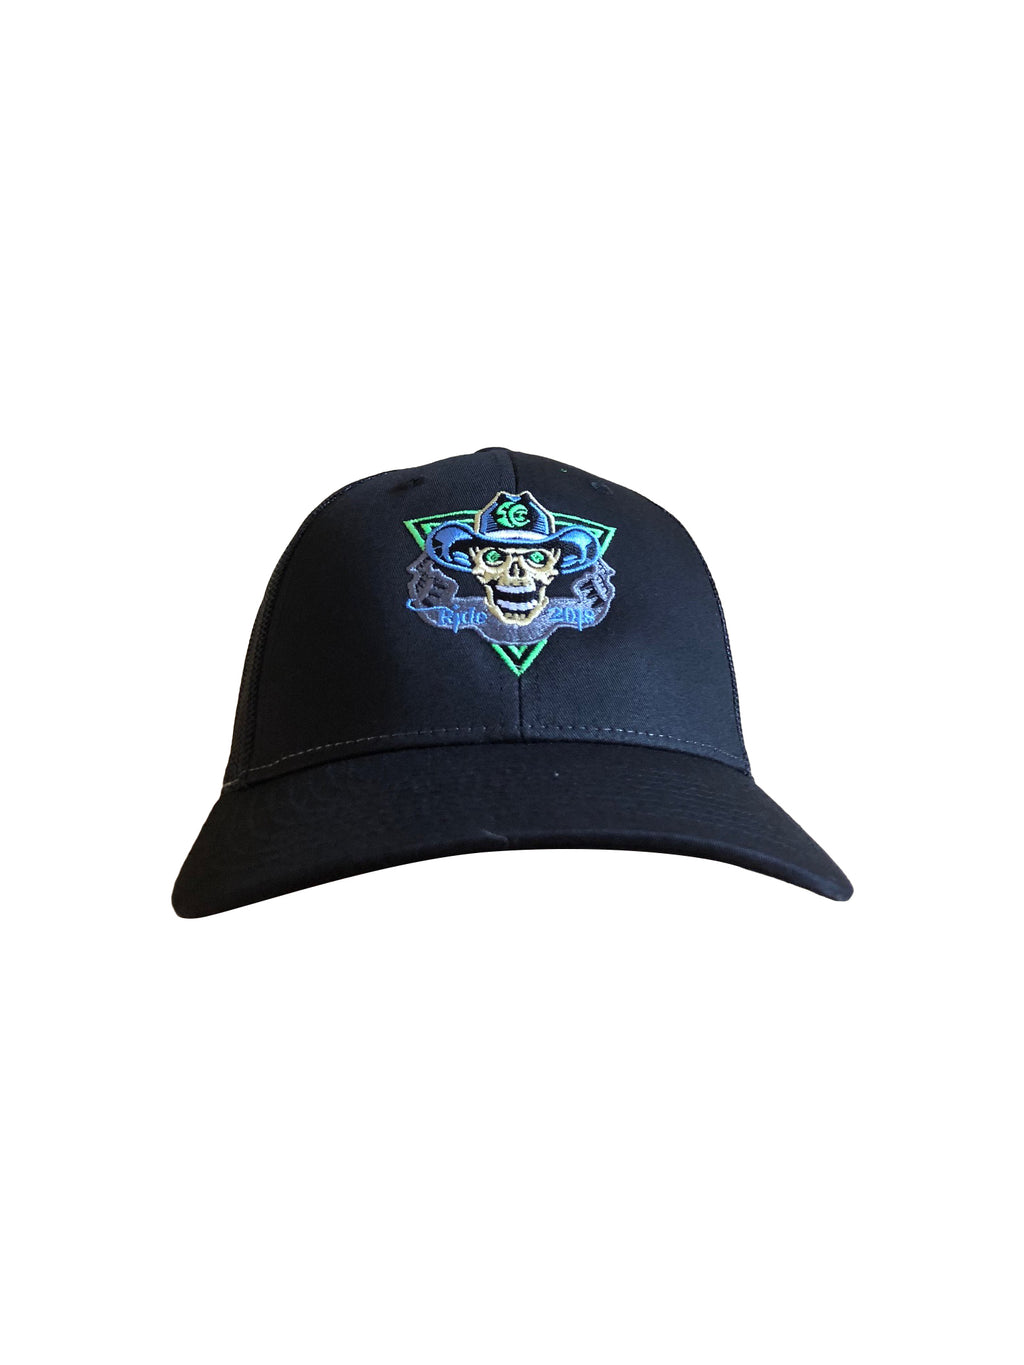 2018 To Hell U Ride Richardson Trucker Hat 115 Black Solid Front with Black Mesh Back Adjustable Flap One Size Fits All Front